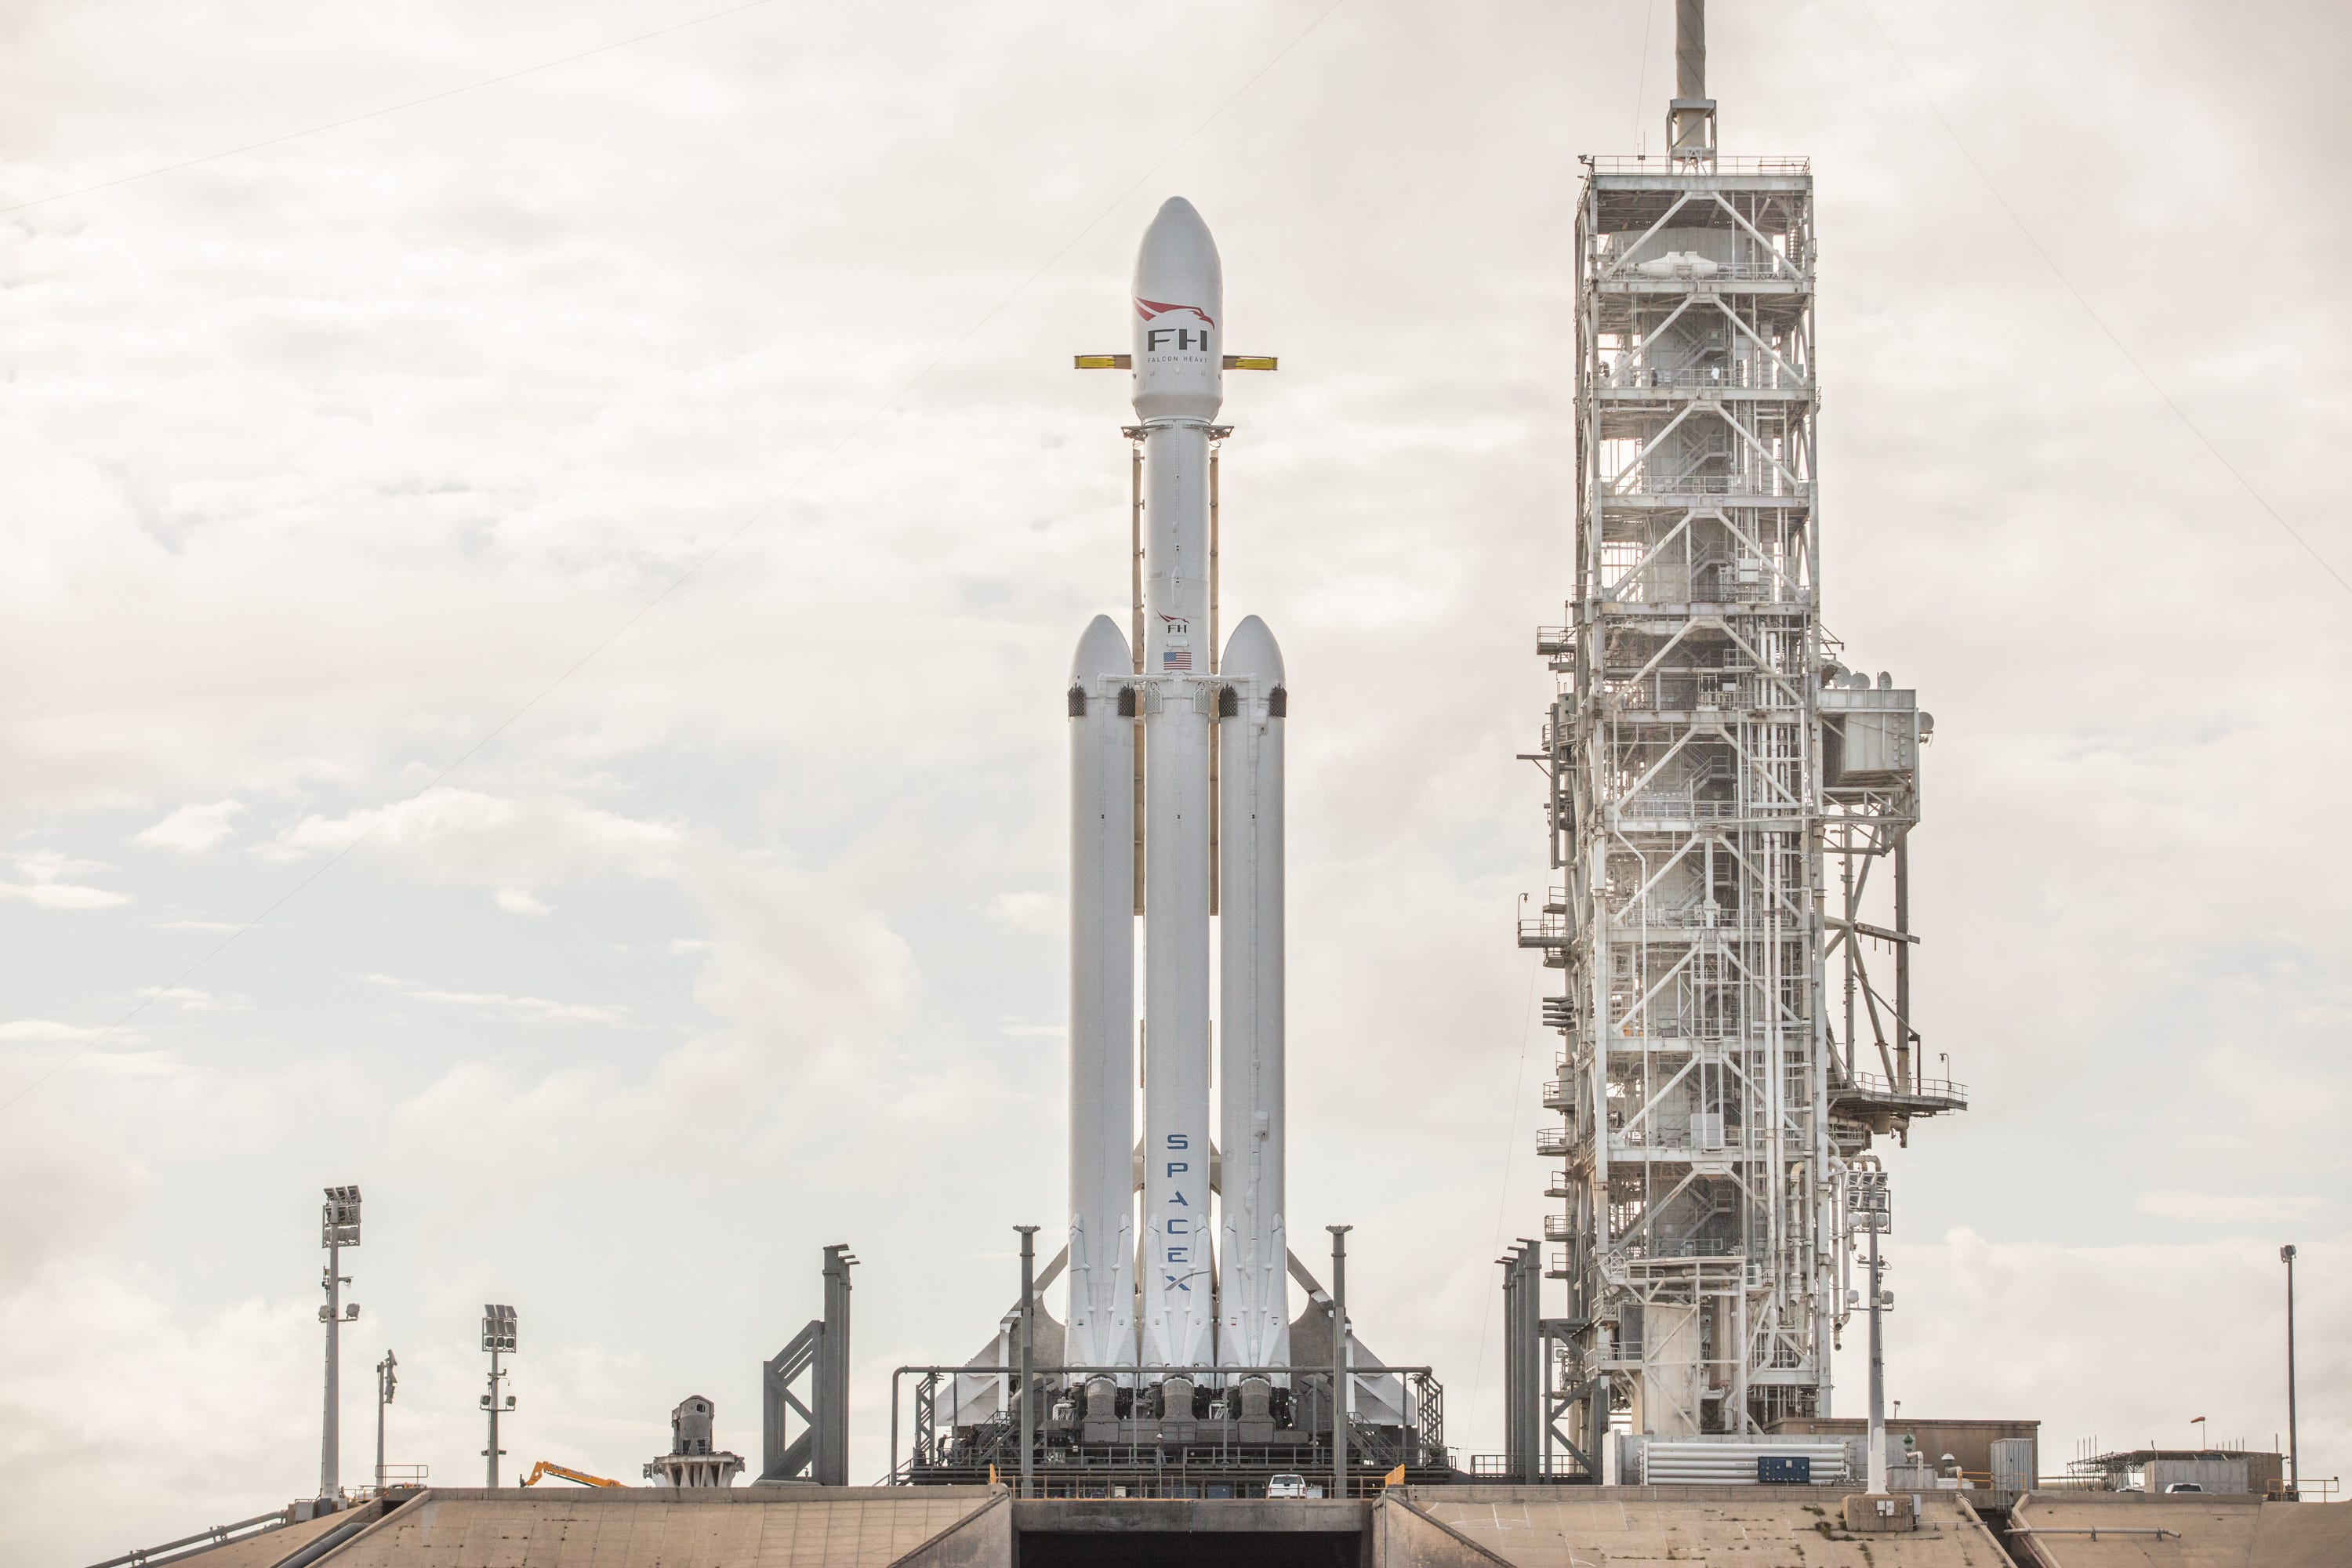 636507095604867382-38583829295-d658ecb02f-o SpaceX scheduled to test fire Falcon Heavy rocket this week